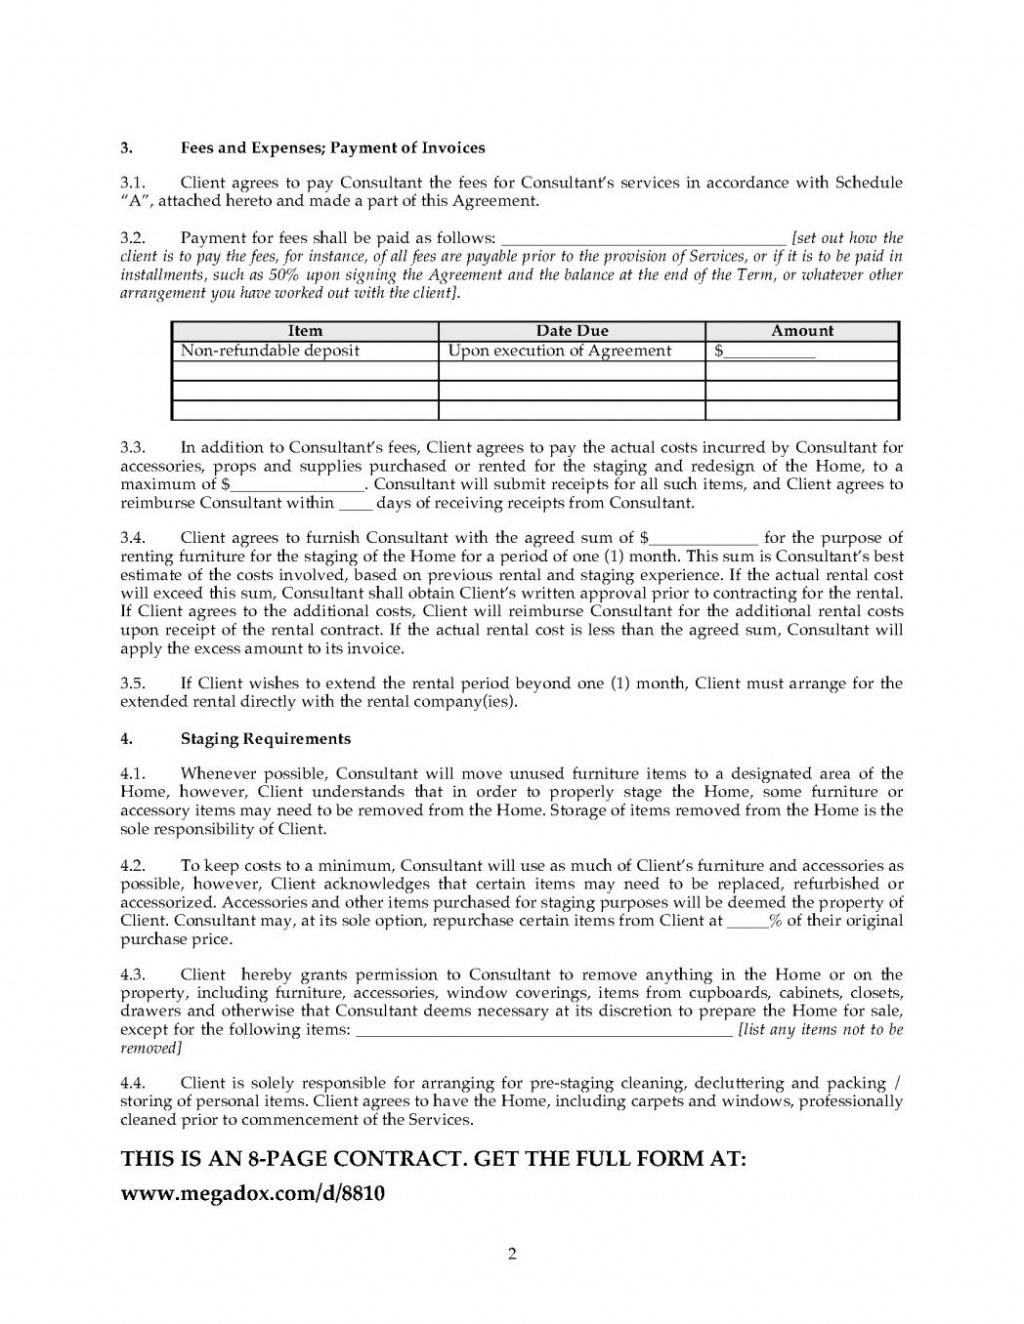 011 Example Ofpendix In Research Paper Buy Geometry Essay Ona Sample Furniture Purchase Invoice Template Home Staging Services Contract Legal Forms And Business R Format 1048x1356 Outstanding Appendices Apa Large